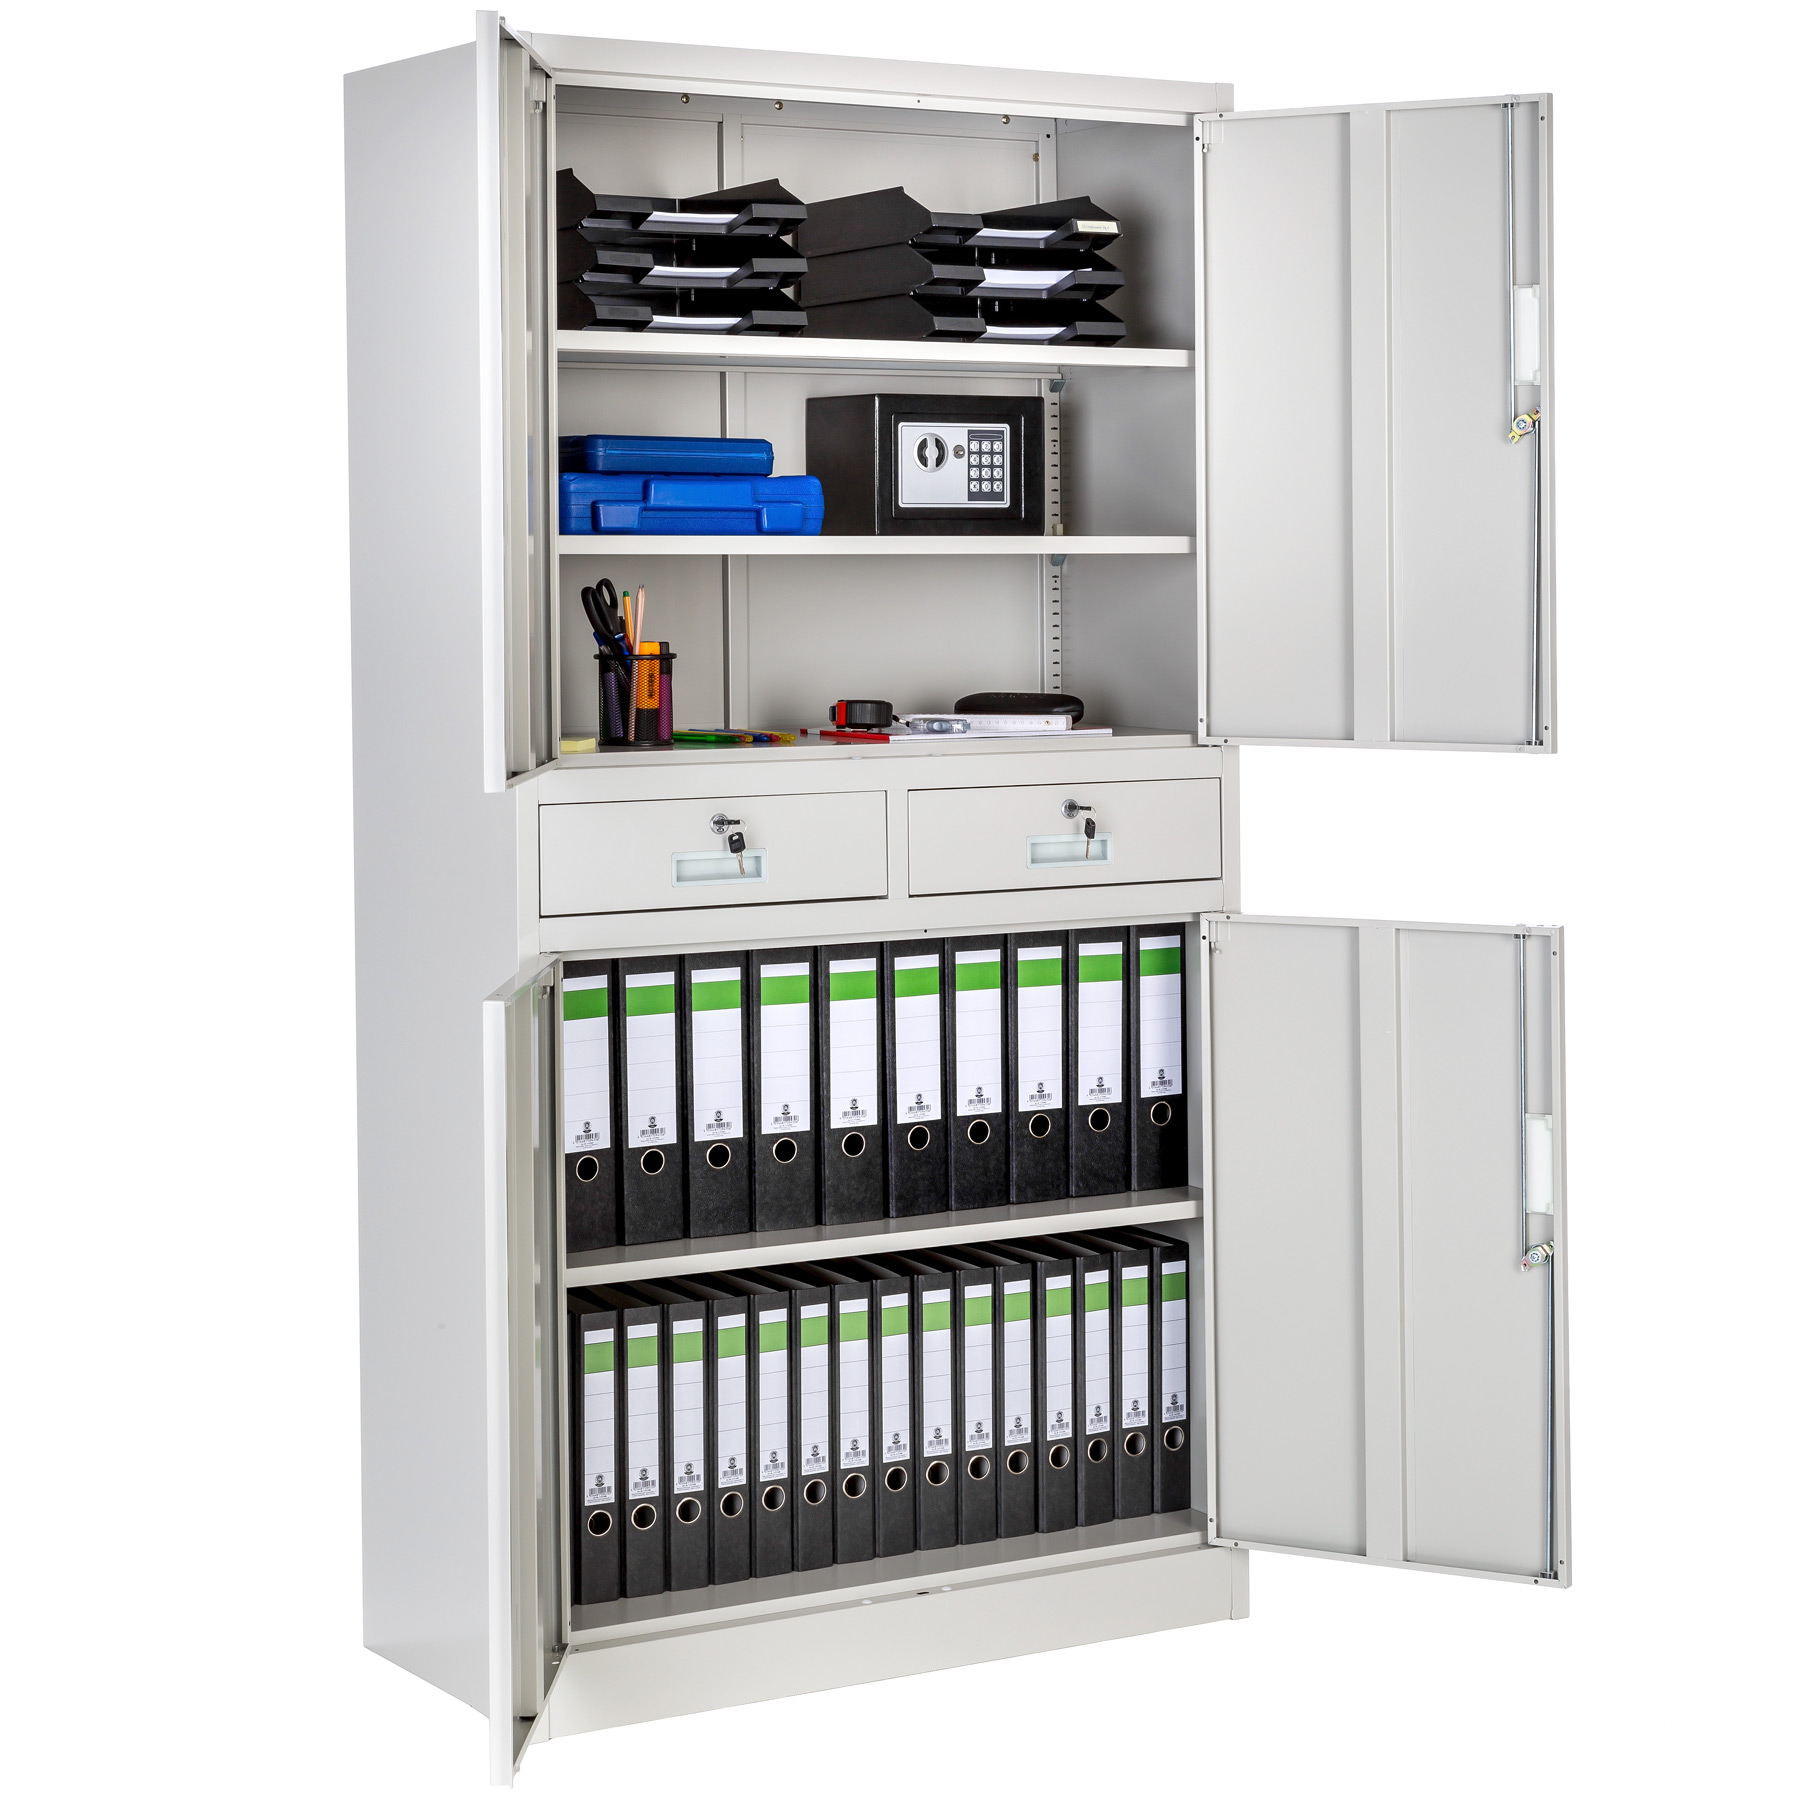 office storage cupboard metal 4 shelves rail tool cabinet furniture 180x90x40cm ebay. Black Bedroom Furniture Sets. Home Design Ideas